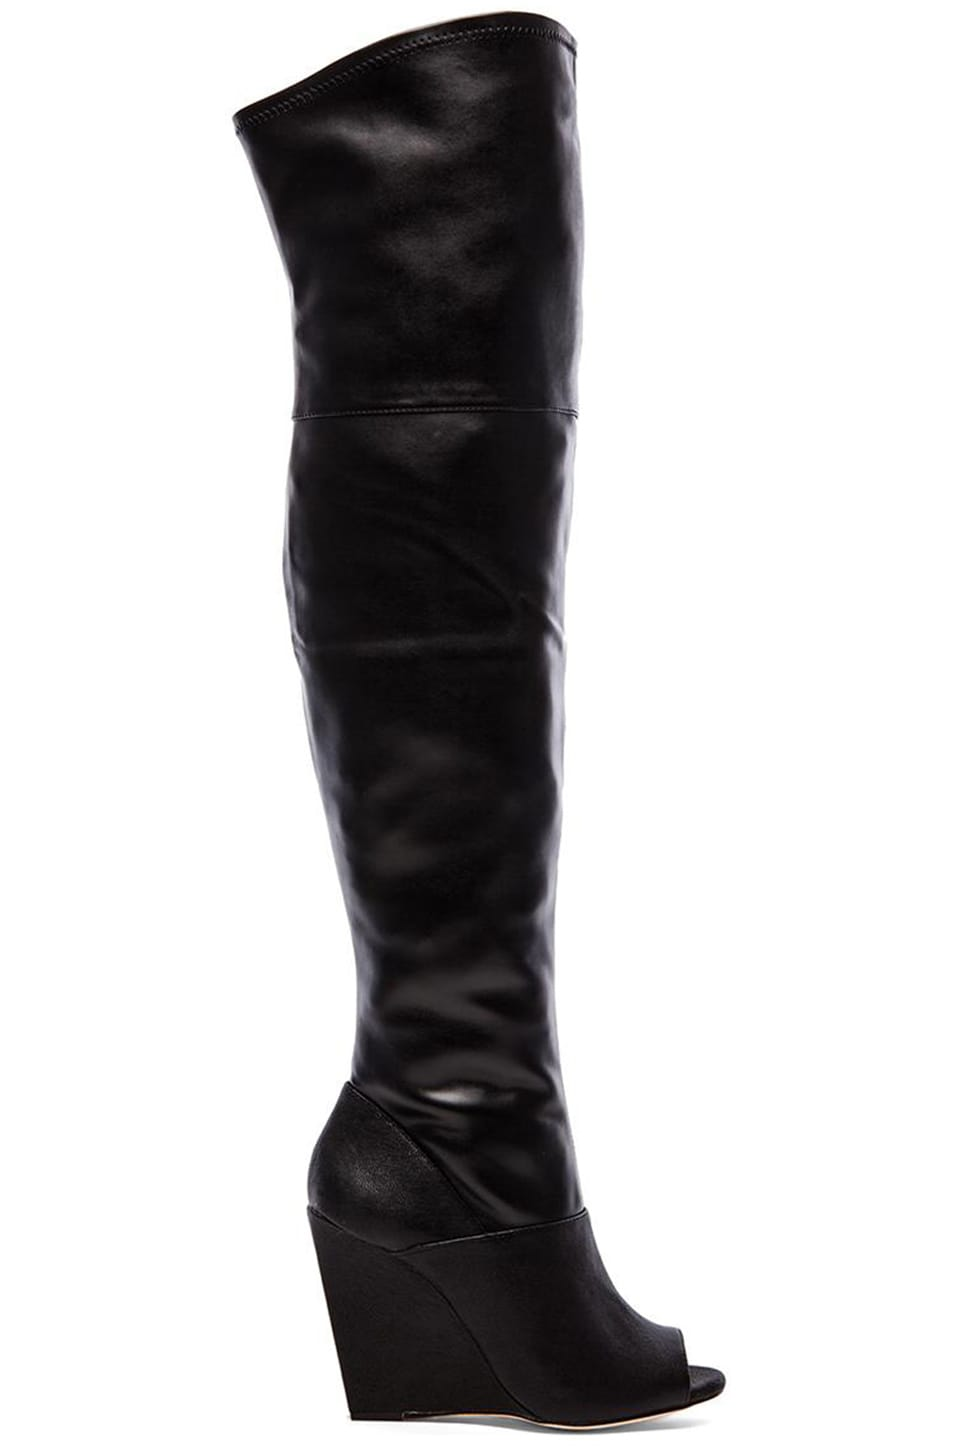 BCBGMAXAZRIA Gian Open Toe Over The Knee Boots in Black | REVOLVE